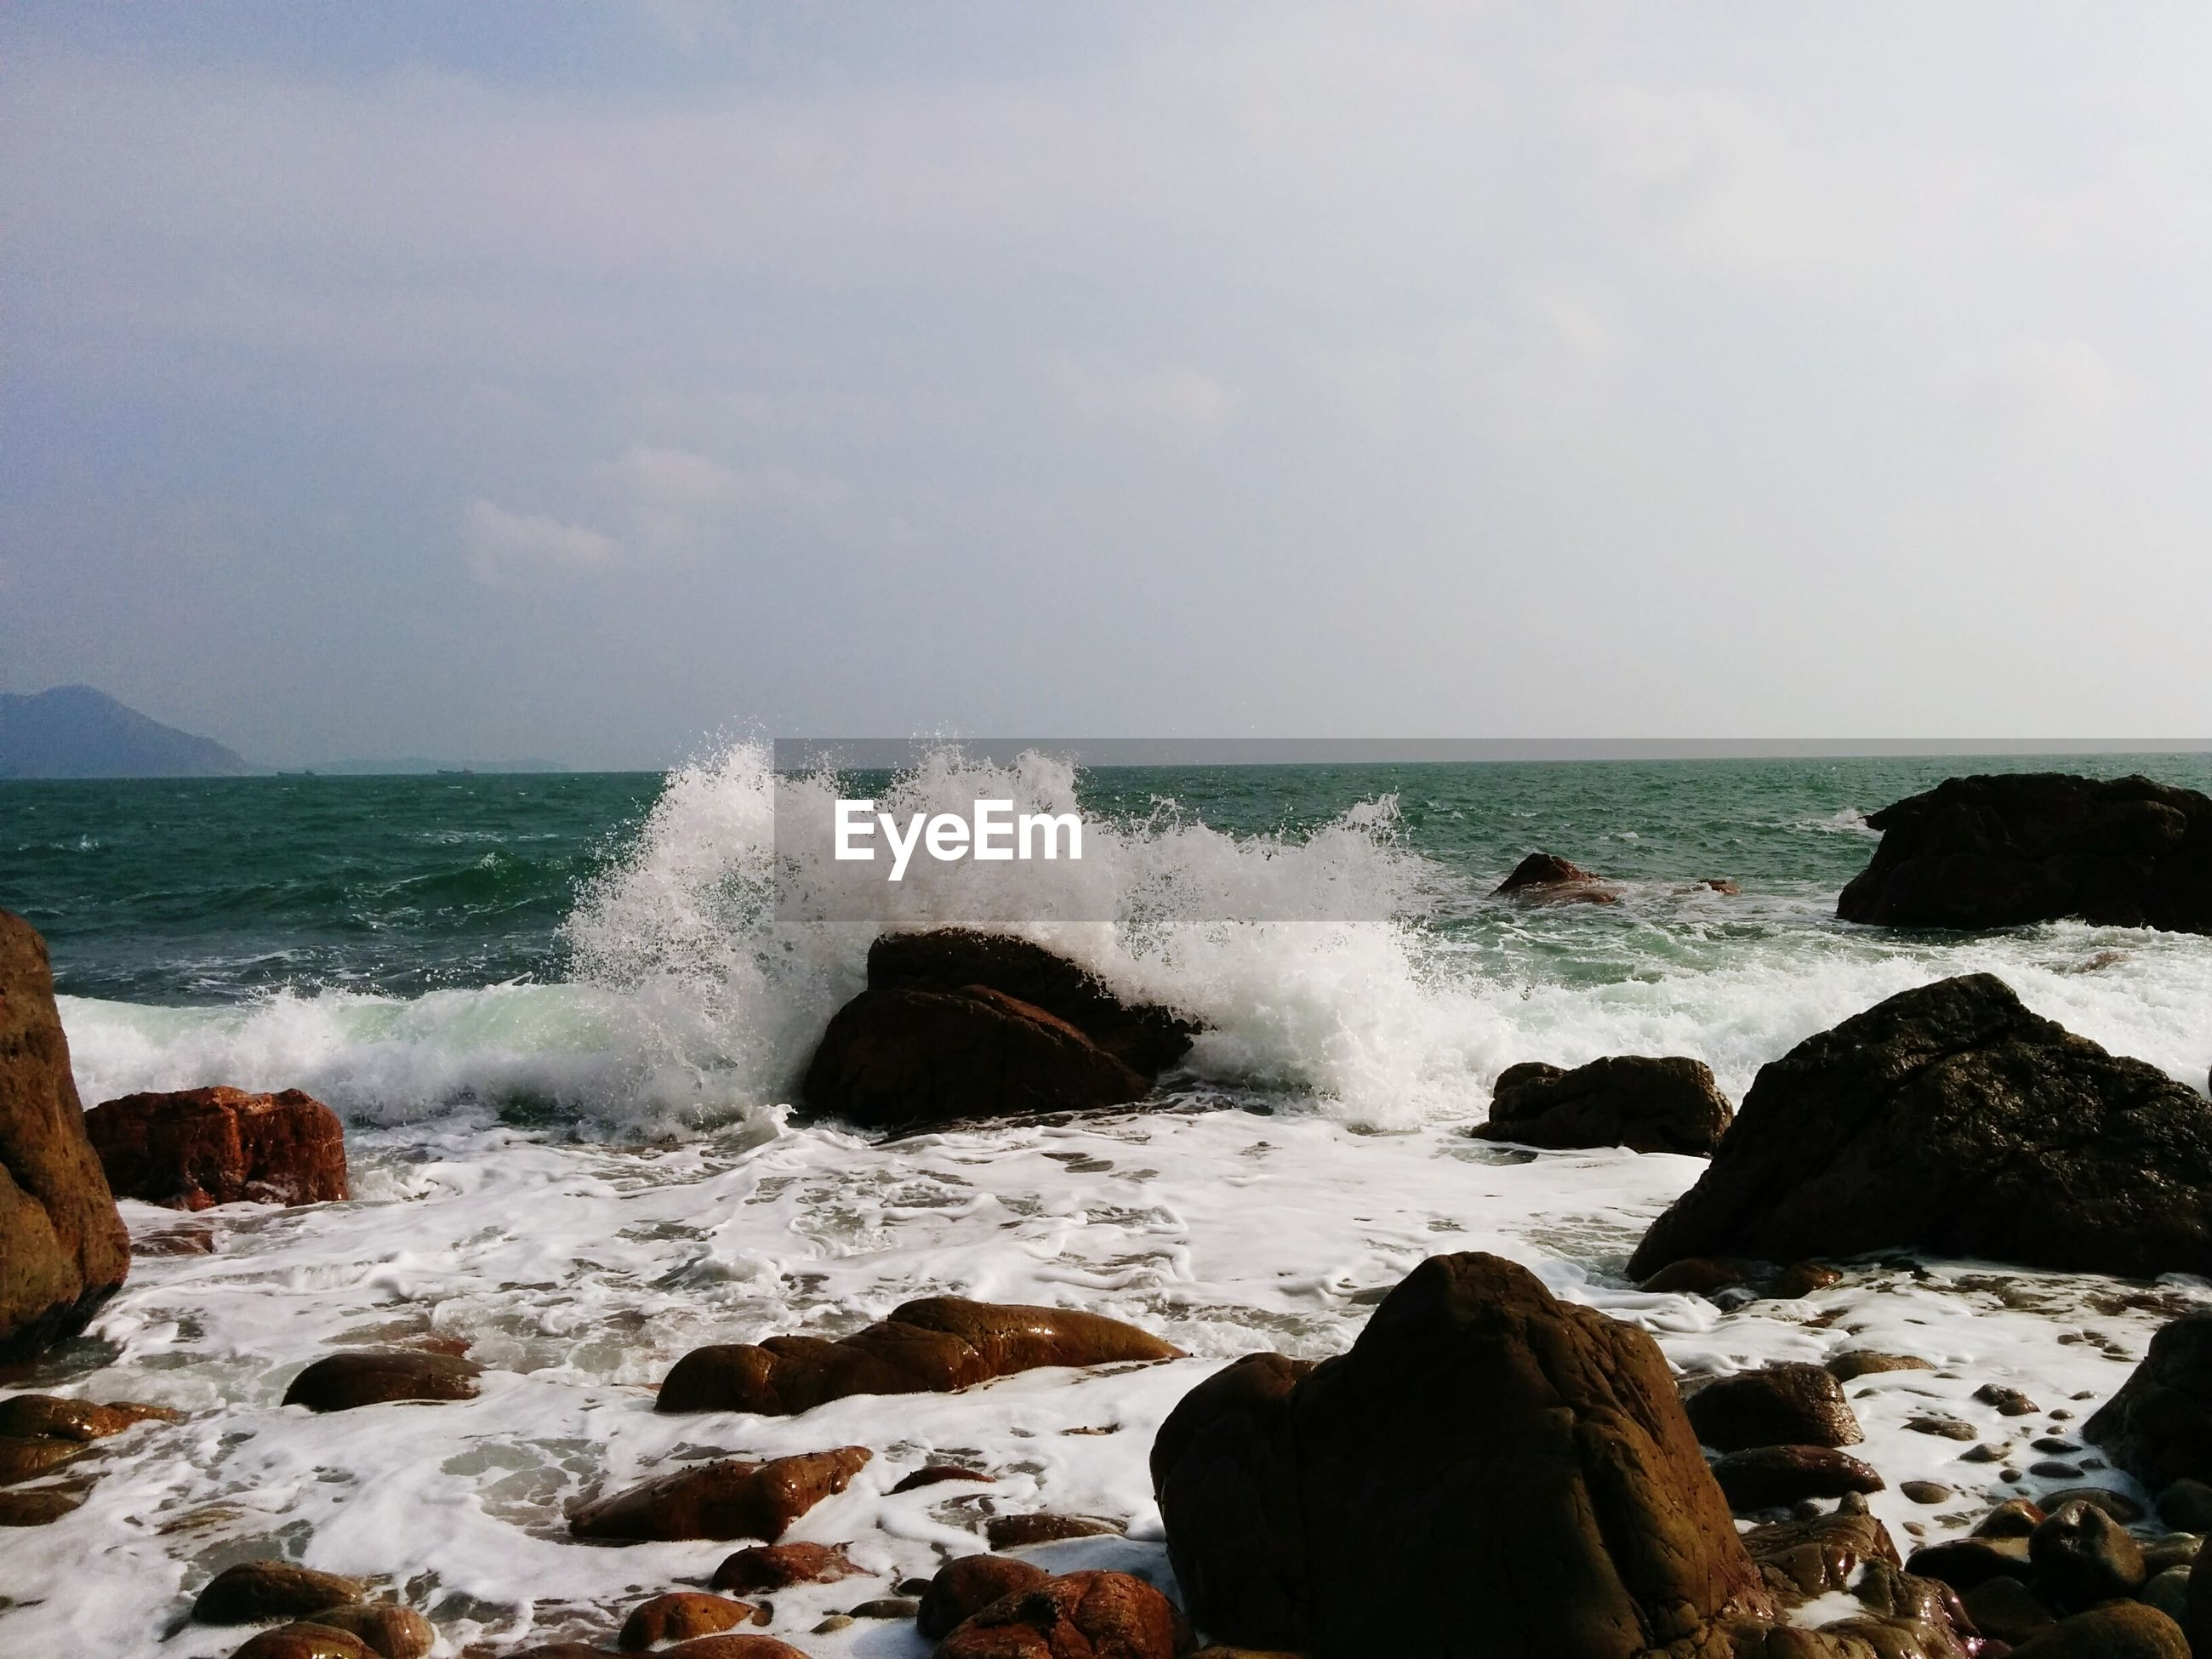 Waves splashing on rocks in sea against sky